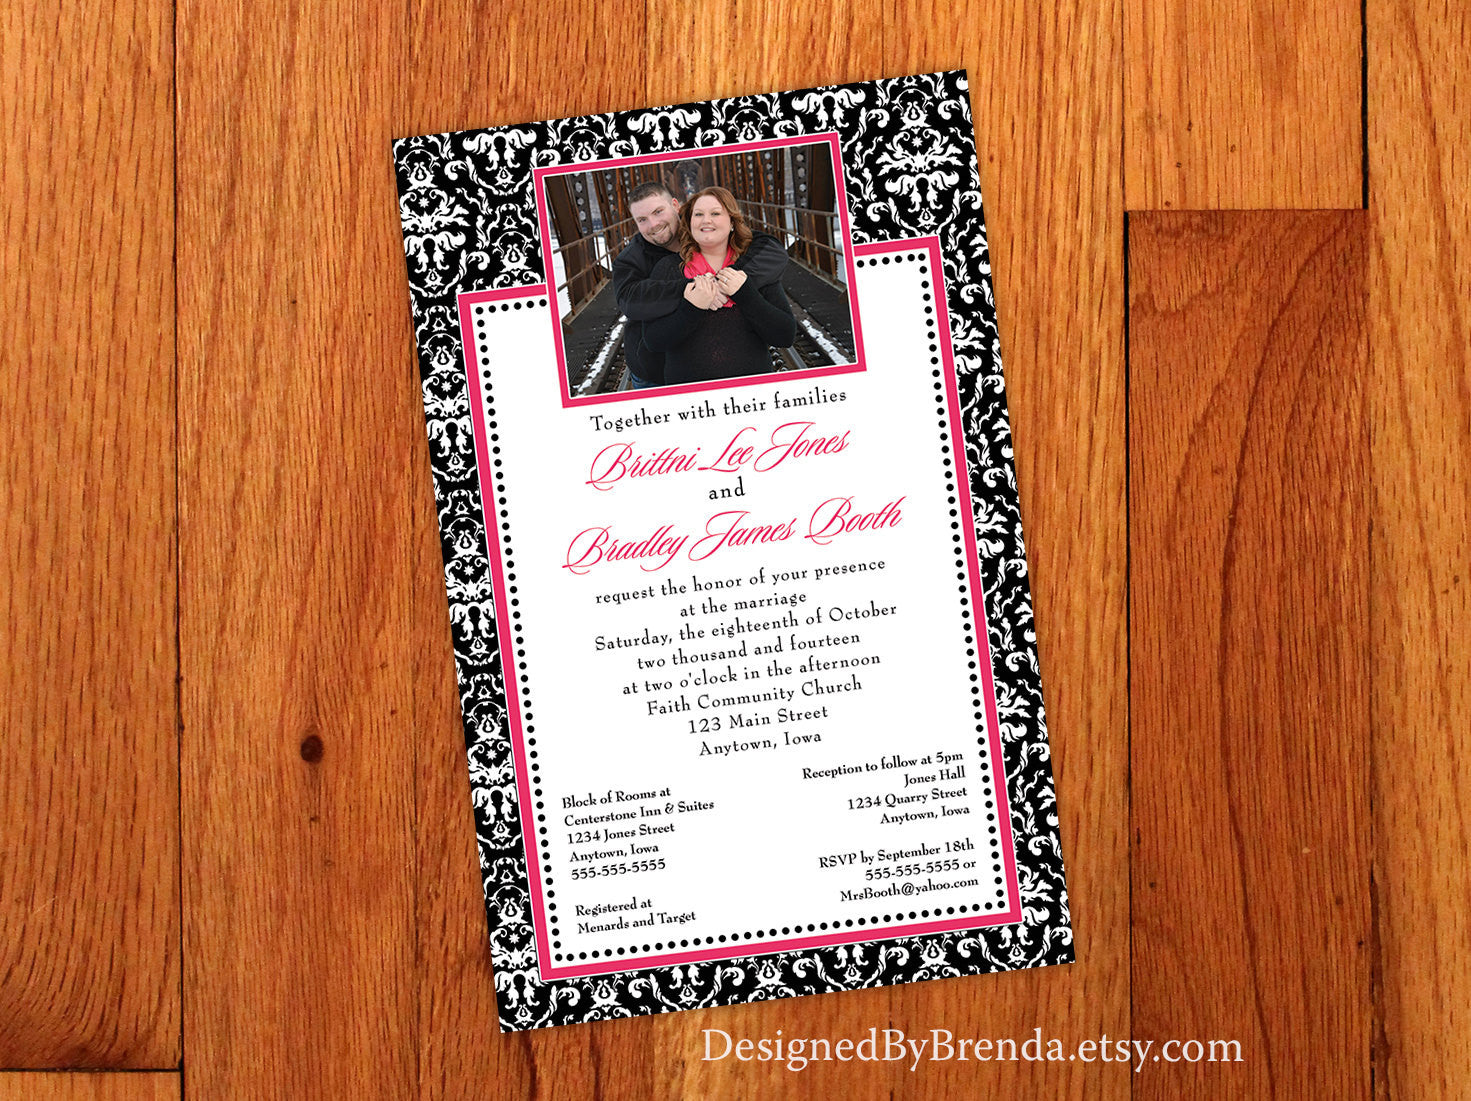 Pink, Black & White Damask Wedding Invitations with Photo - Can also be Anniversary Invite